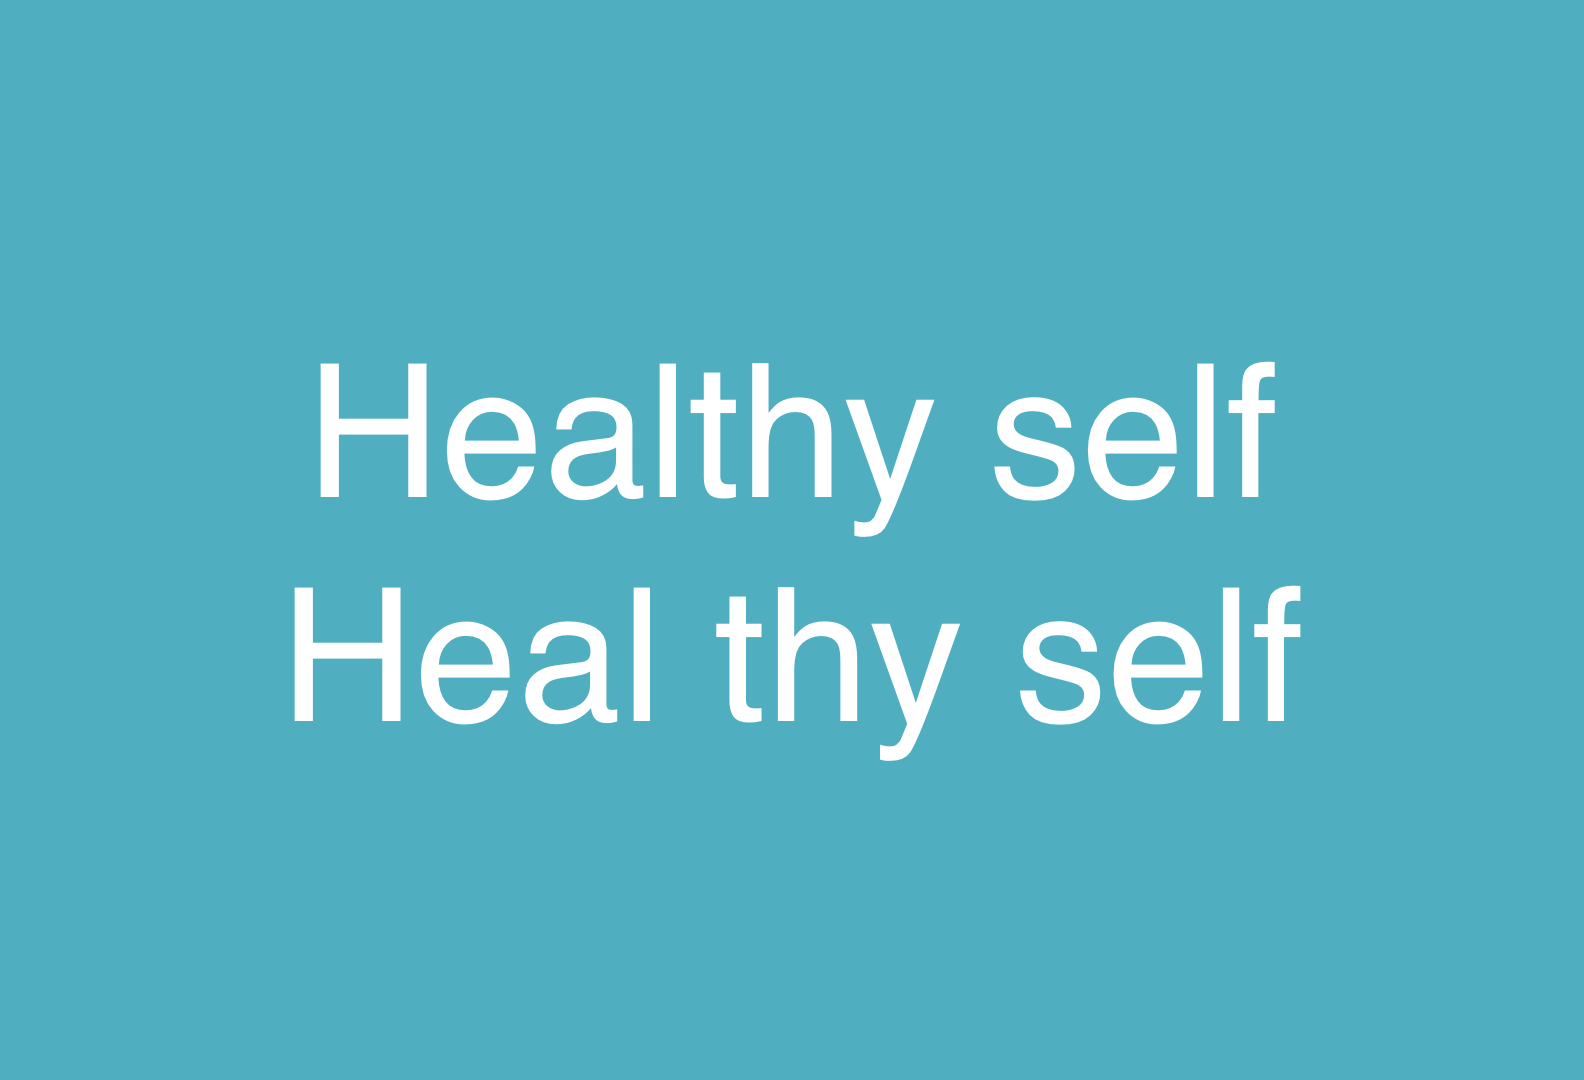 Healthy self = Heal thy self | Supporting our bodies for self healing